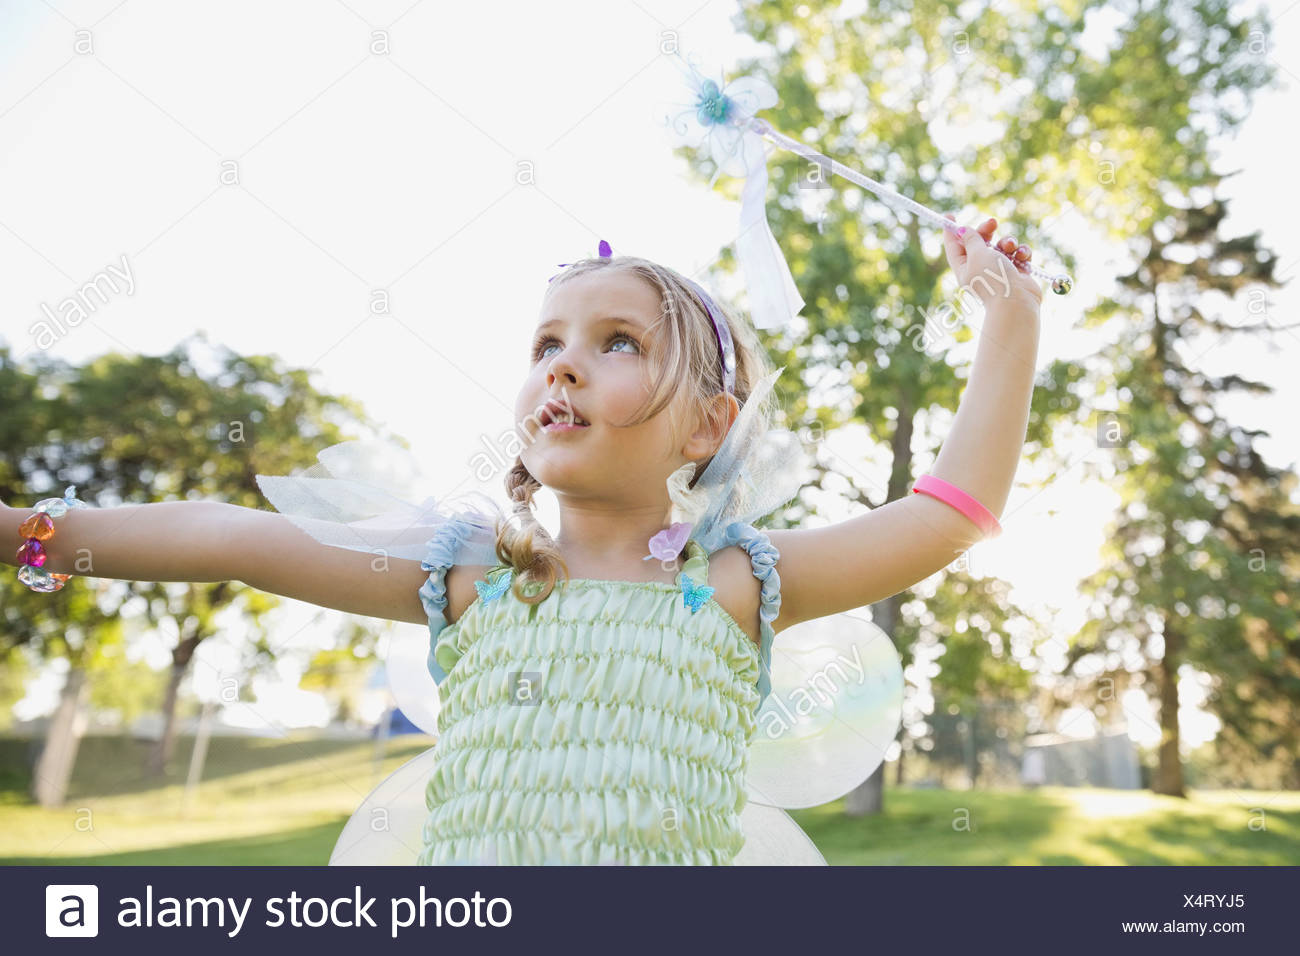 Little girl wearing costume fée en plein air Photo Stock